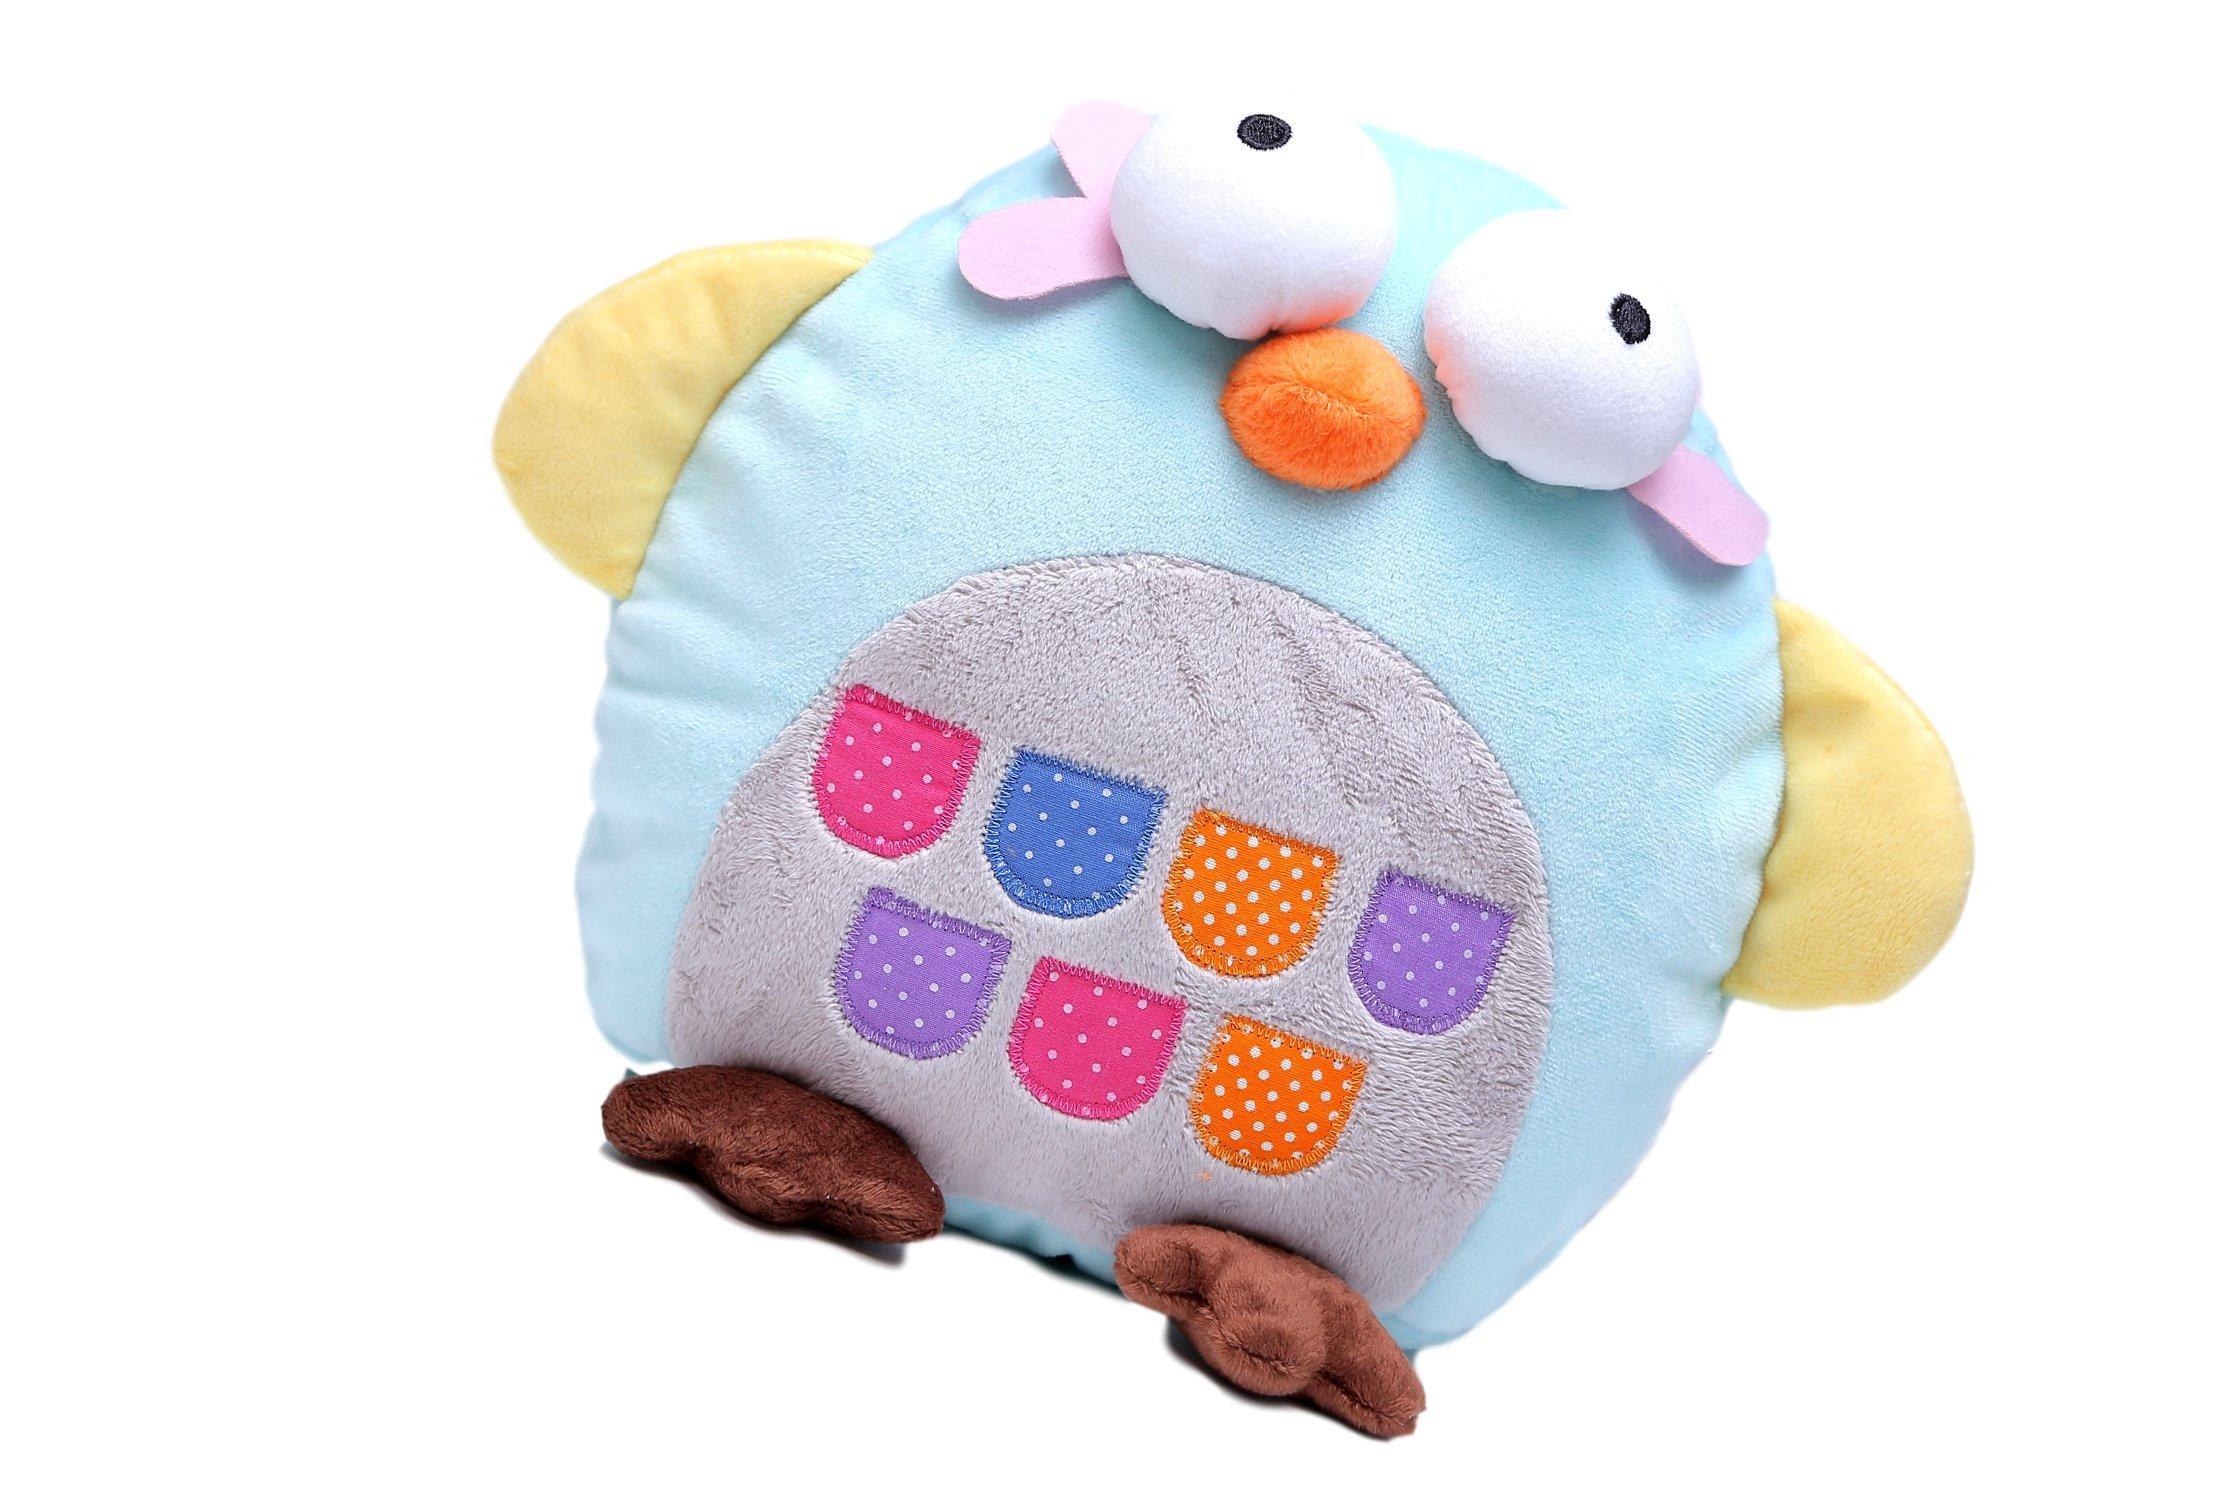 Fun Travel Neck Pillow Changes To Stuffed Animal Toy For Your Child -- Firm Support U-Shape Keeps Head Upright and Comfortable Even on Long Car and Plane Trips. Makes a Great Carry-On or Gift